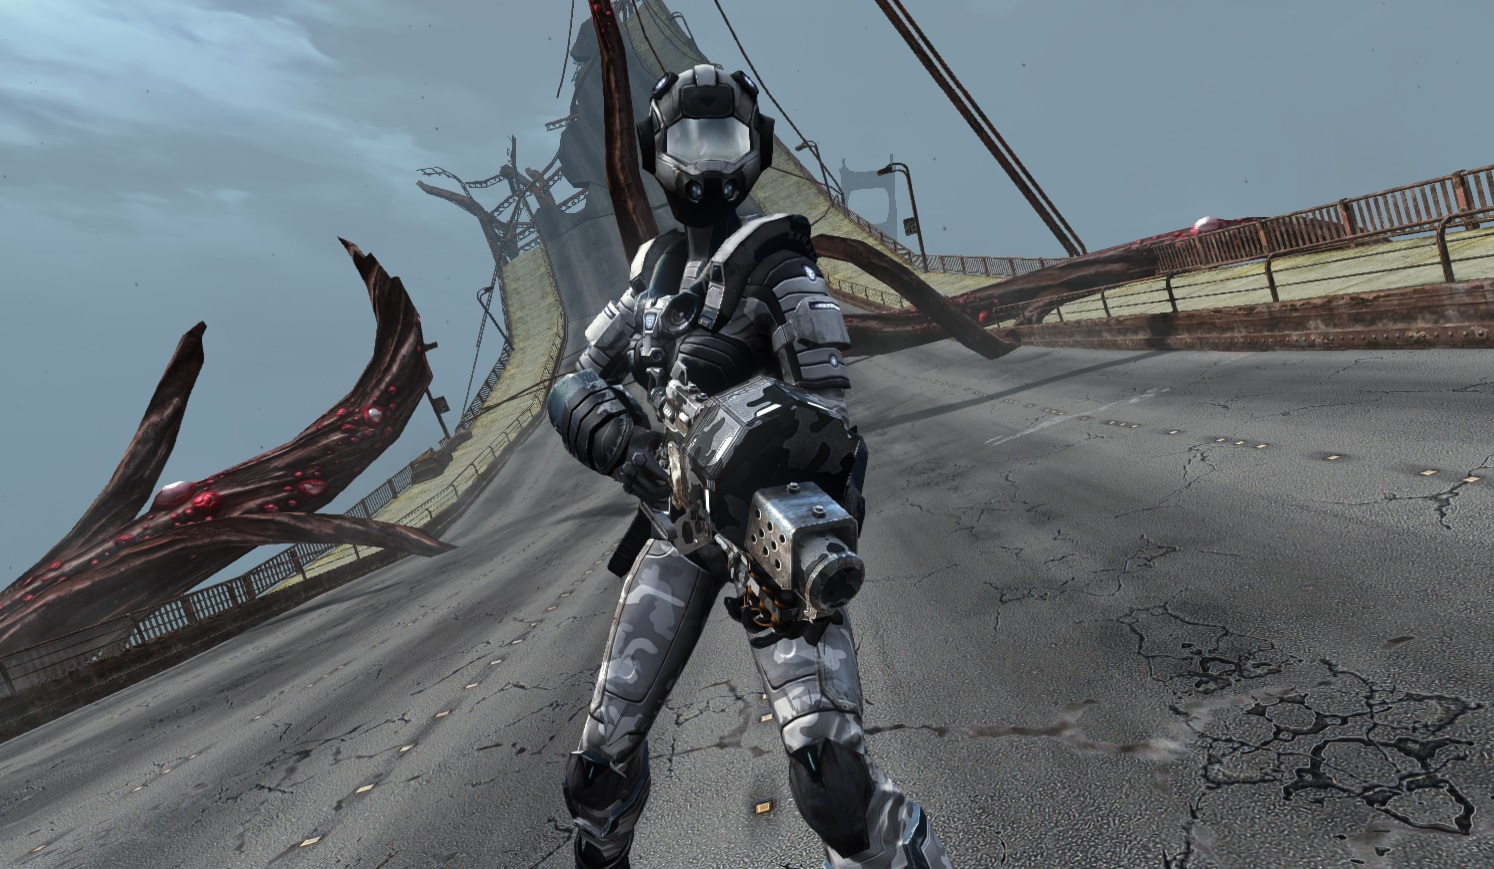 Defiance 2050 cosmetic item Terranaut outfit